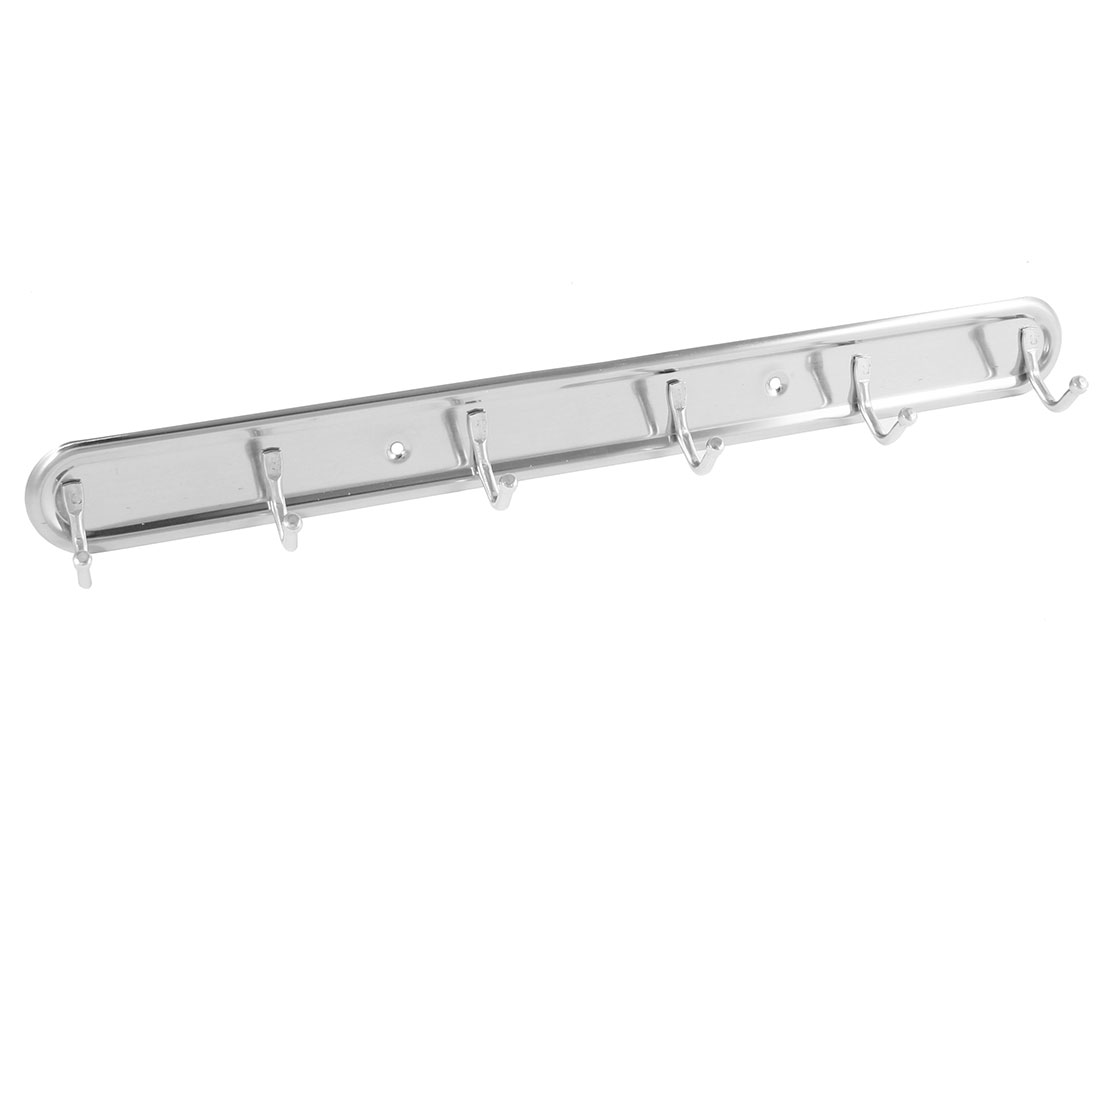 Silver Tone Stainless Steel 6 Hooks Wall Hanger Towel Coat Rack